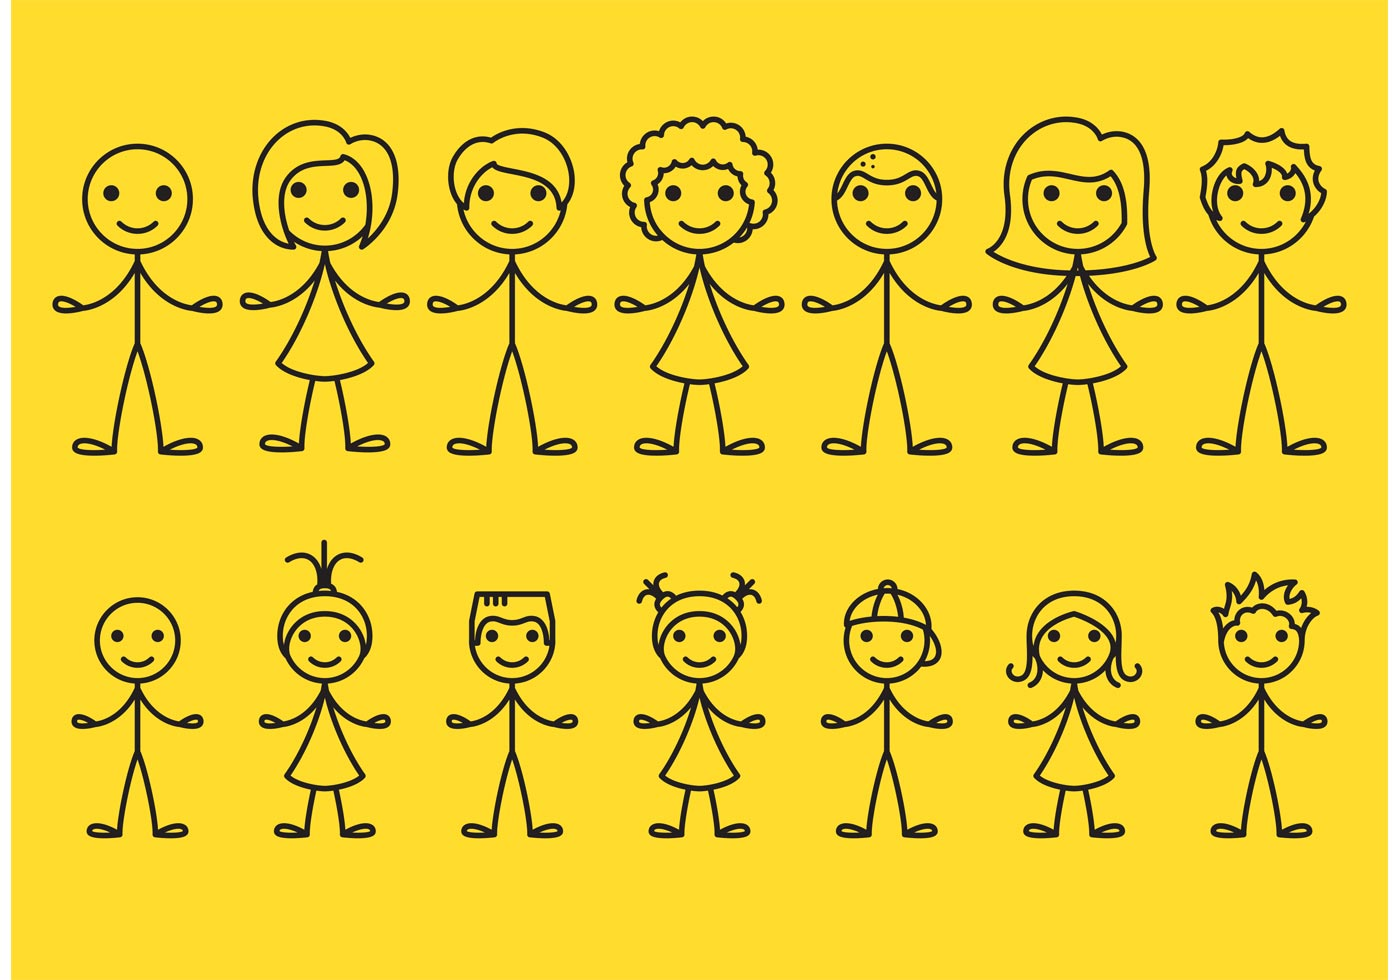 Stick person outstanding clipart png freeuse stock Kid Stick Figure Free Vector Art - (89 Free Downloads) png freeuse stock